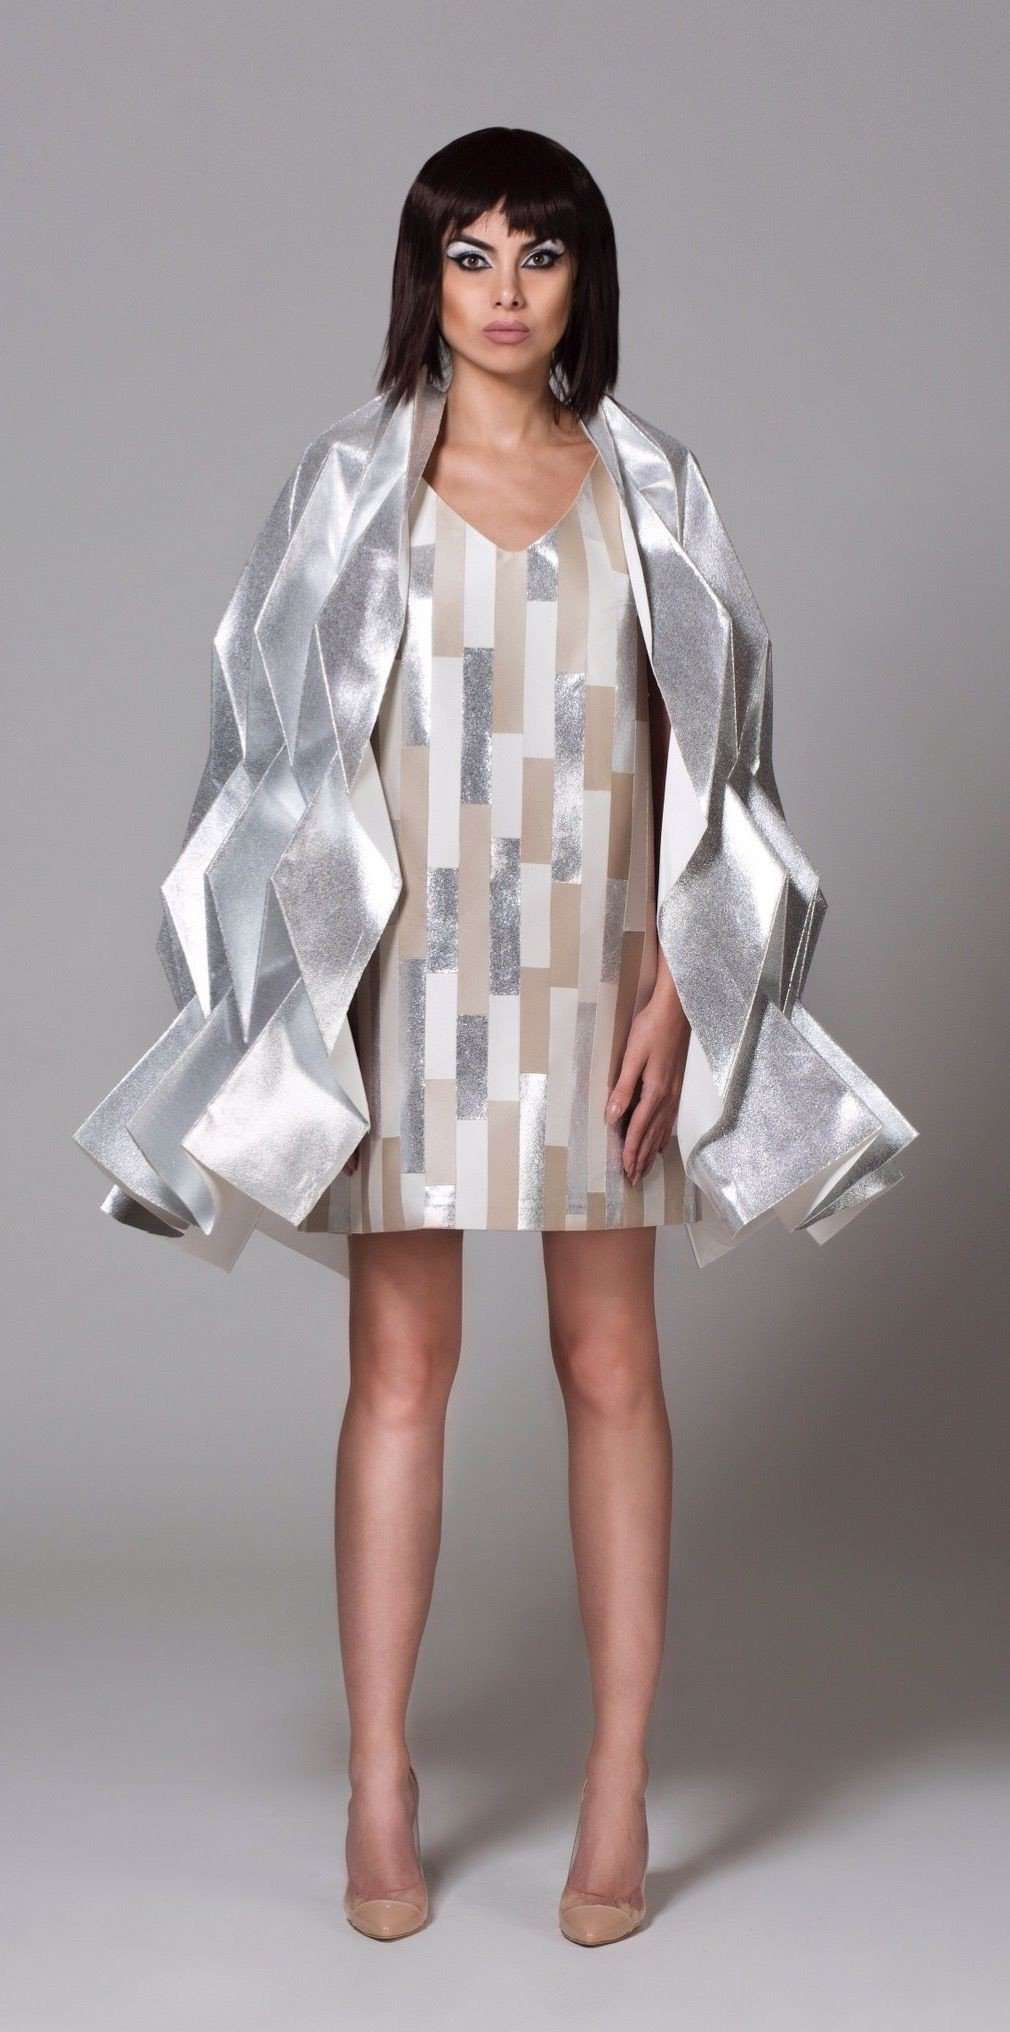 CYBORG COUTURE - PLEATED CAPE,NAYLA OBEID, Curated Designer at Freesigners.com